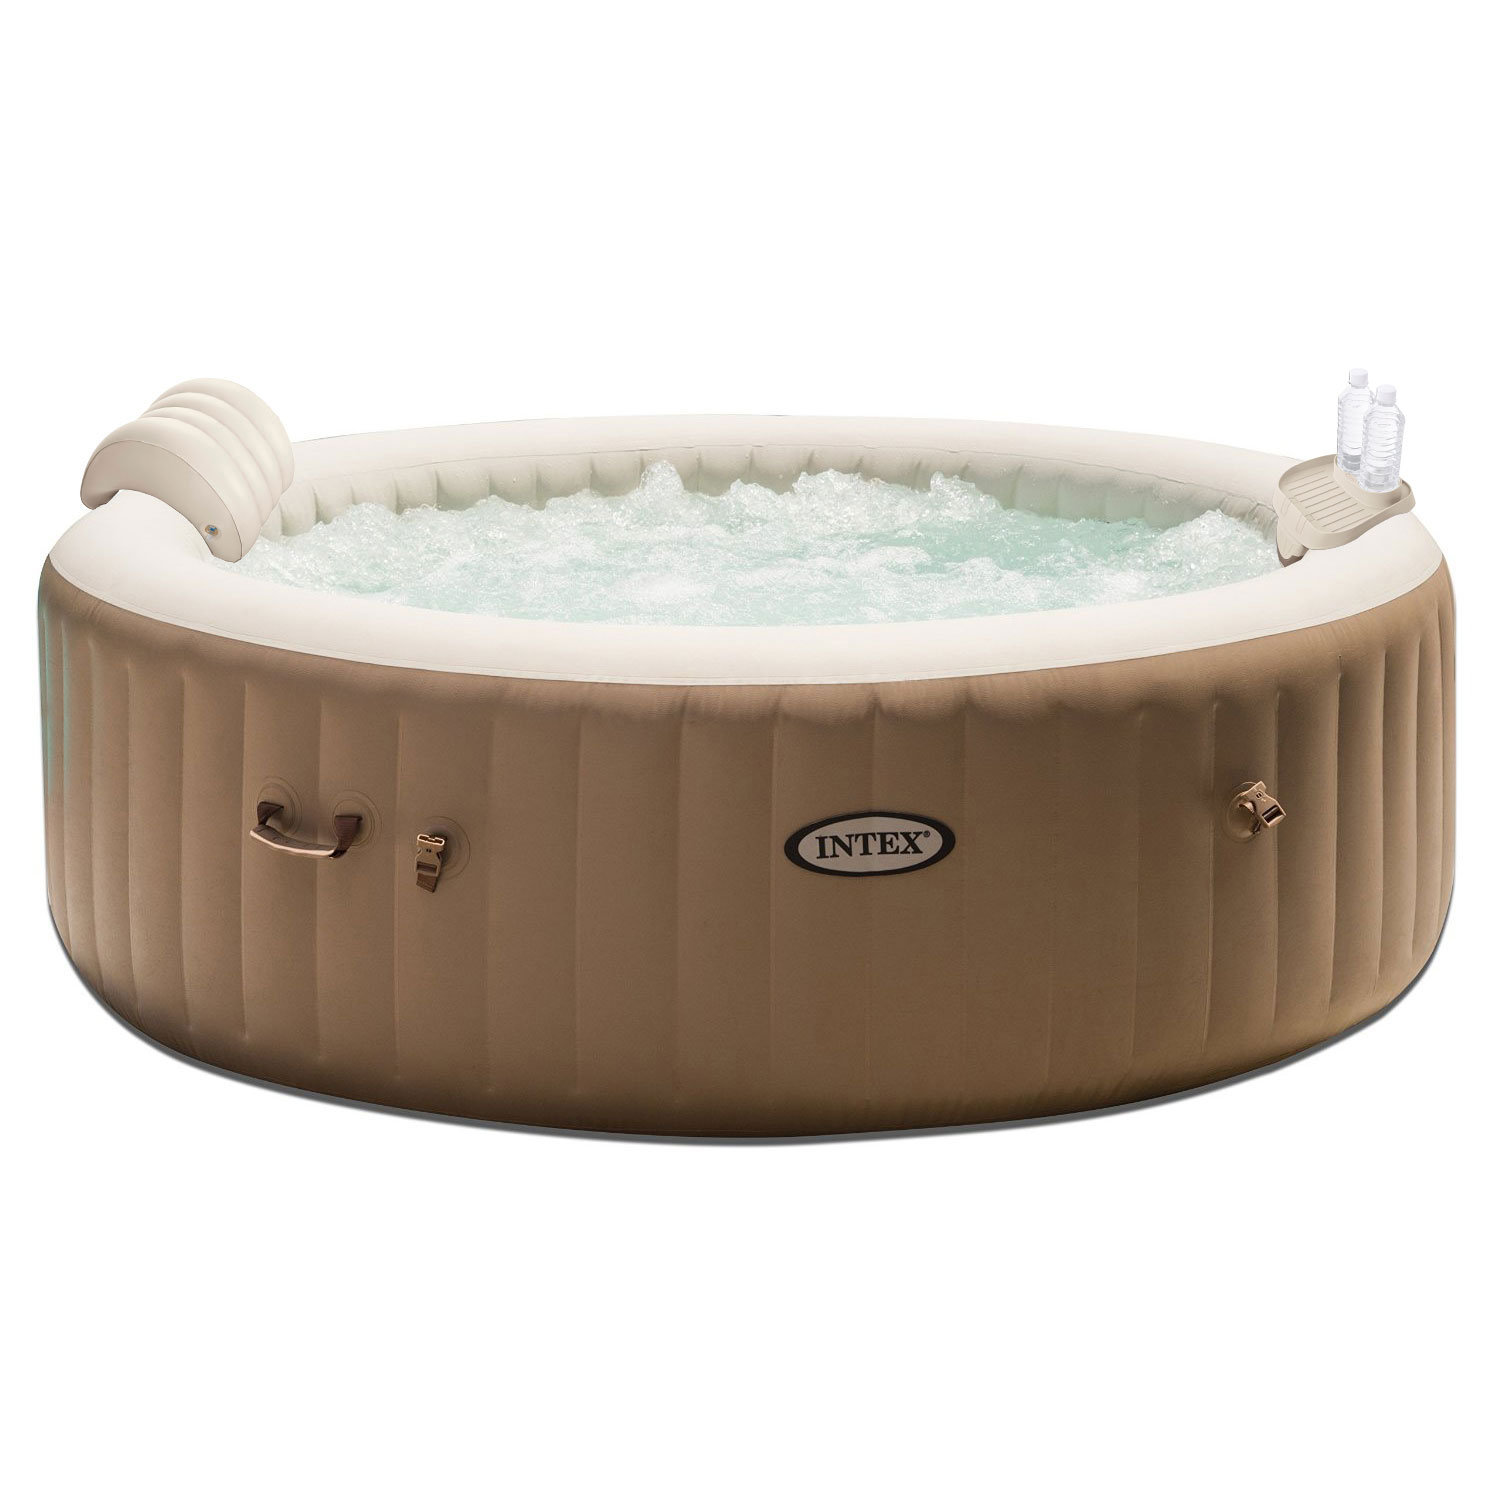 Intex PureSpa 6 Person Inflatable Jet Spa Hot Tub with Drink Tray & Headrest by Intex